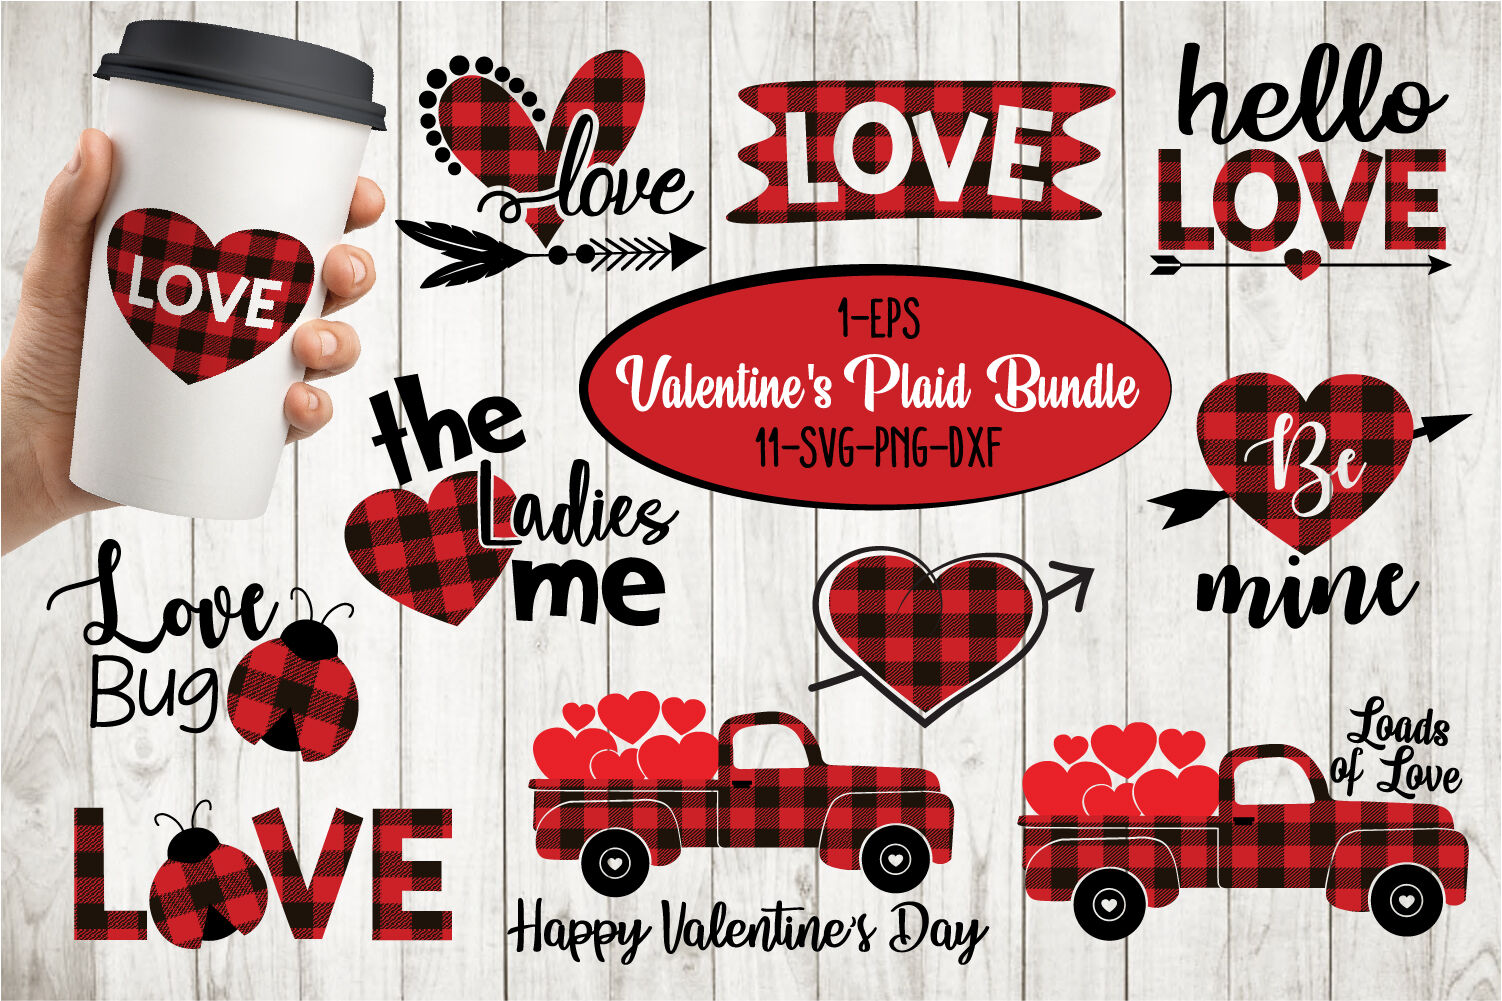 Valentines Quotes Buffalo Plaid Bundle Svg By All About Svg